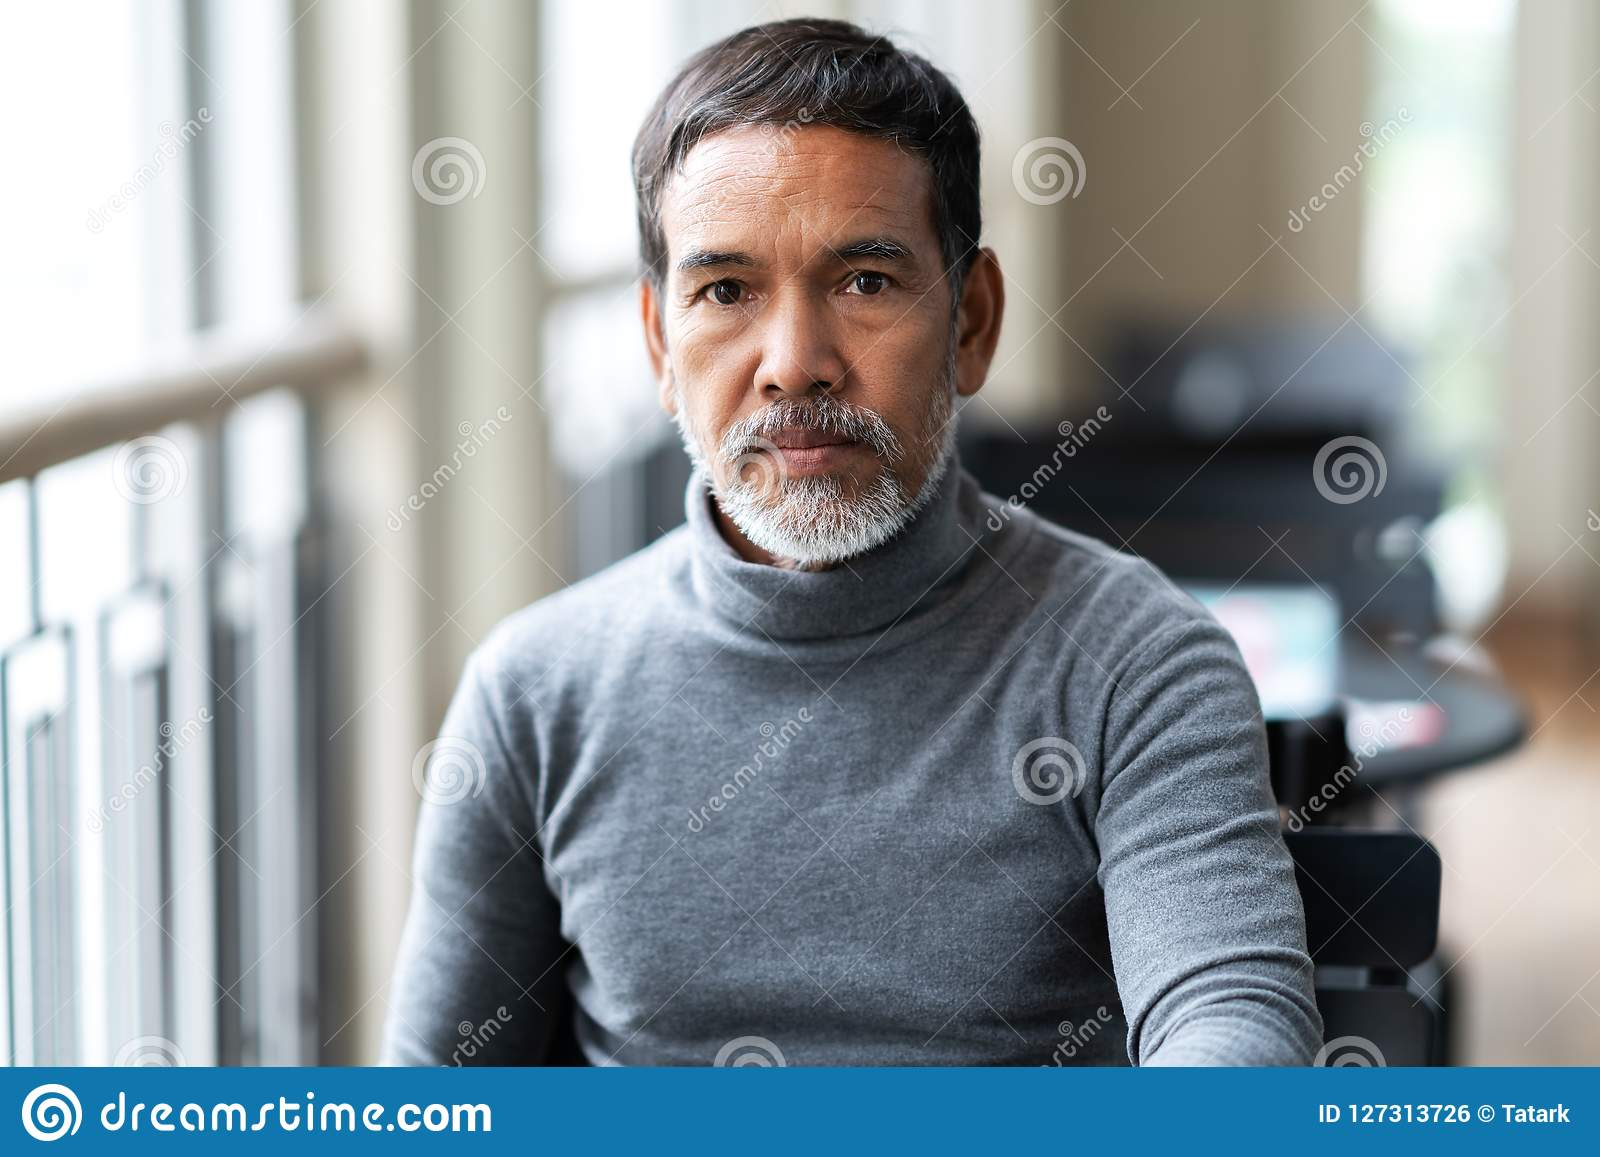 Portrait of unhappy angry mature asian man with stylish short beard looking at cemera with negative suspicious